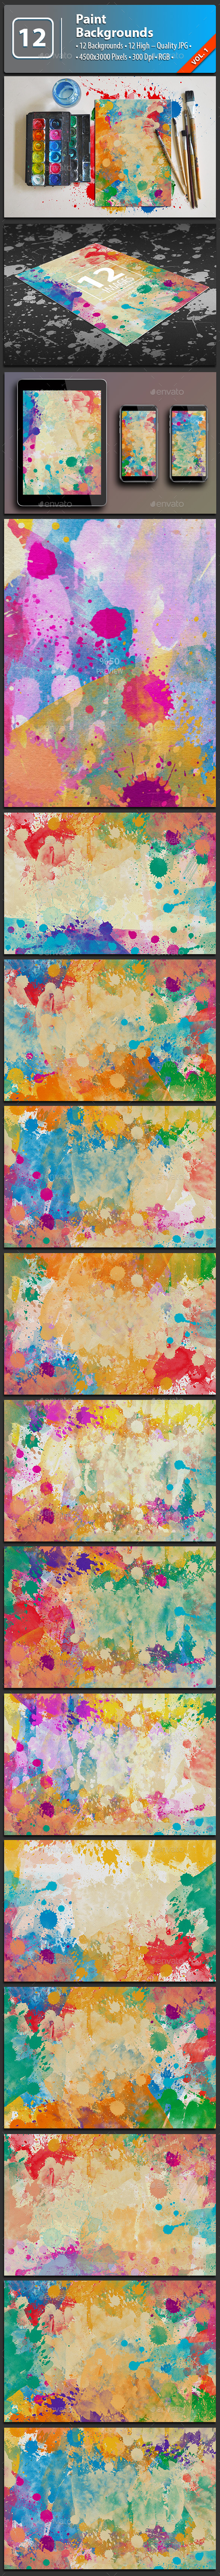 12 Colorful Paint Backgrounds Vol.1 - Backgrounds Graphics